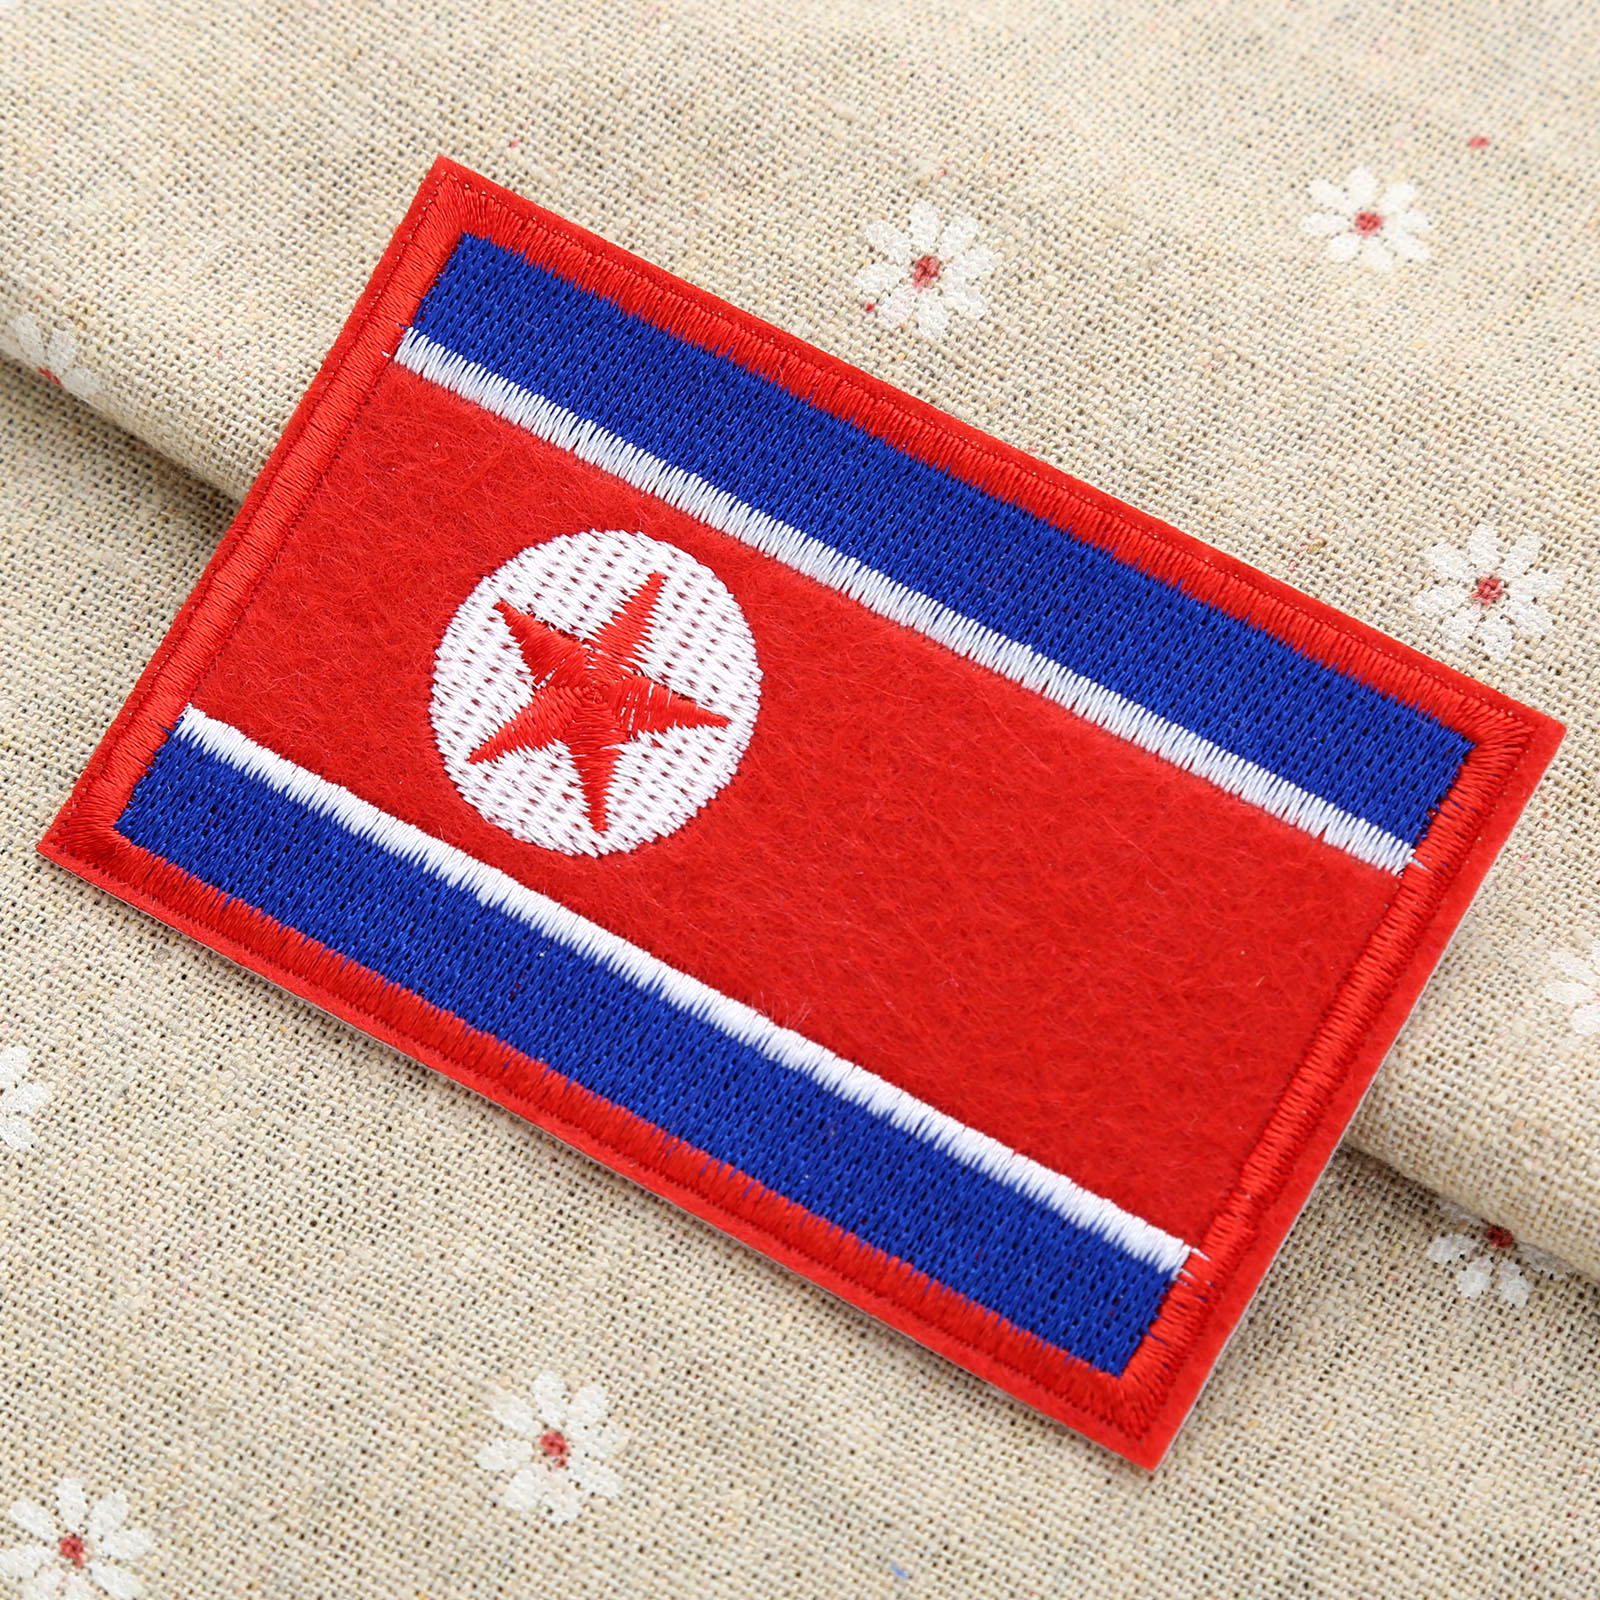 North Korea Country Flag Clothes Patch DIY Flowered Skeleton Embroidered Patches Iron on Fabric Badges Sew on Cloth Applique image